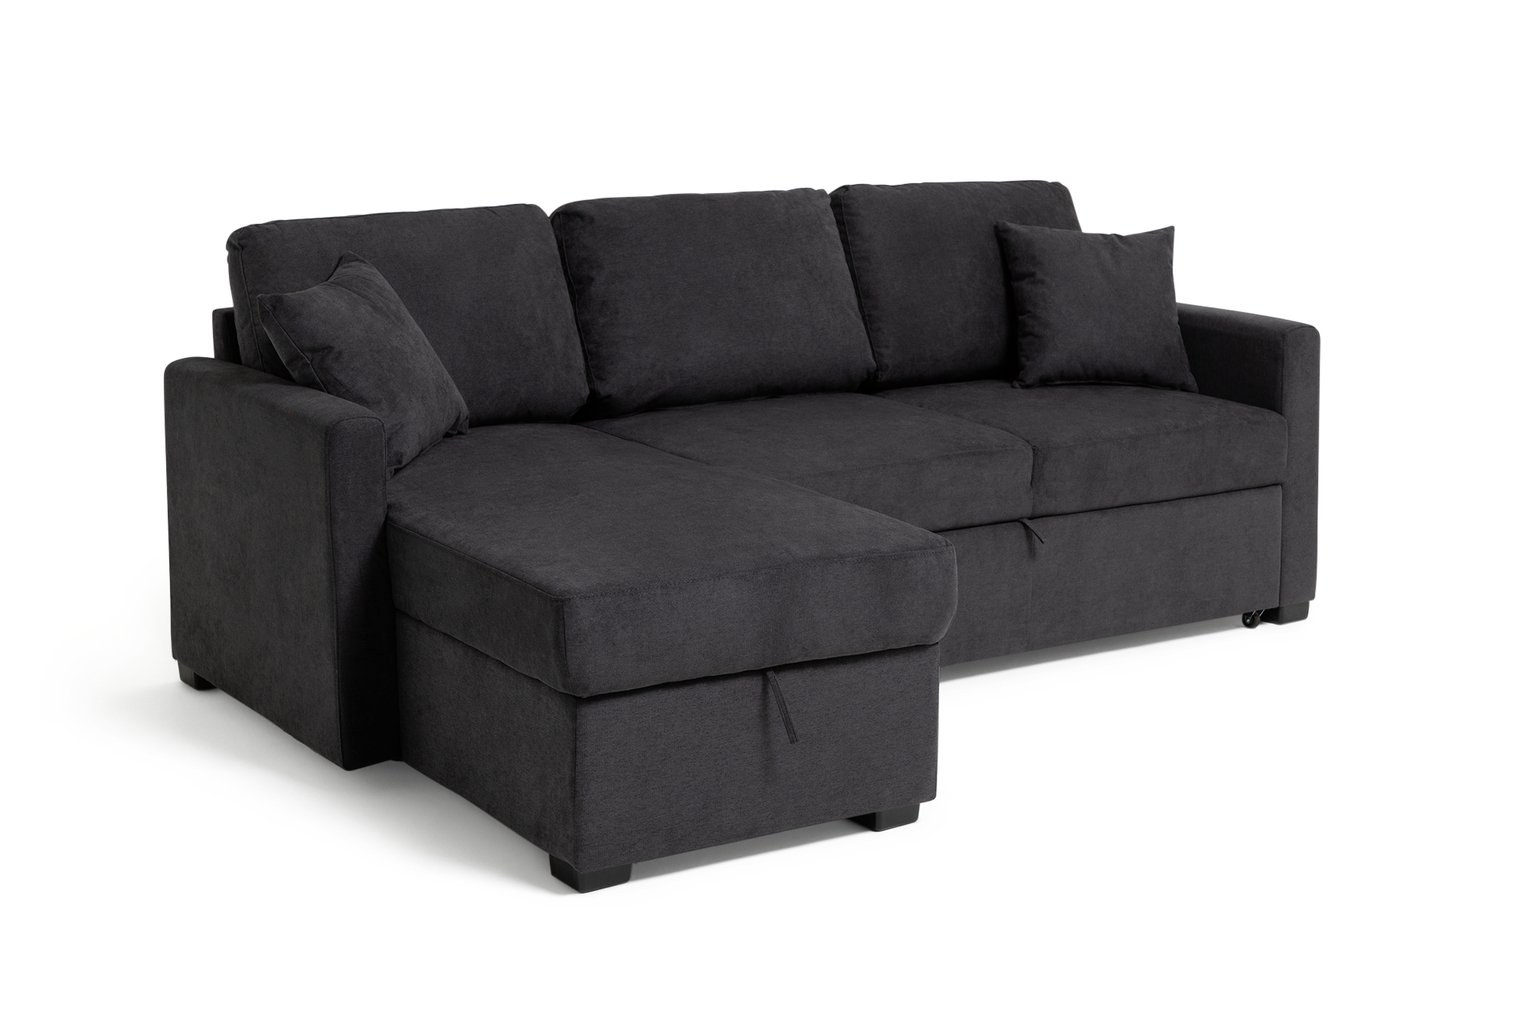 Image of HOME - Reagan - Fabric Left Corner Chaise Sofa Bed - Charcoal